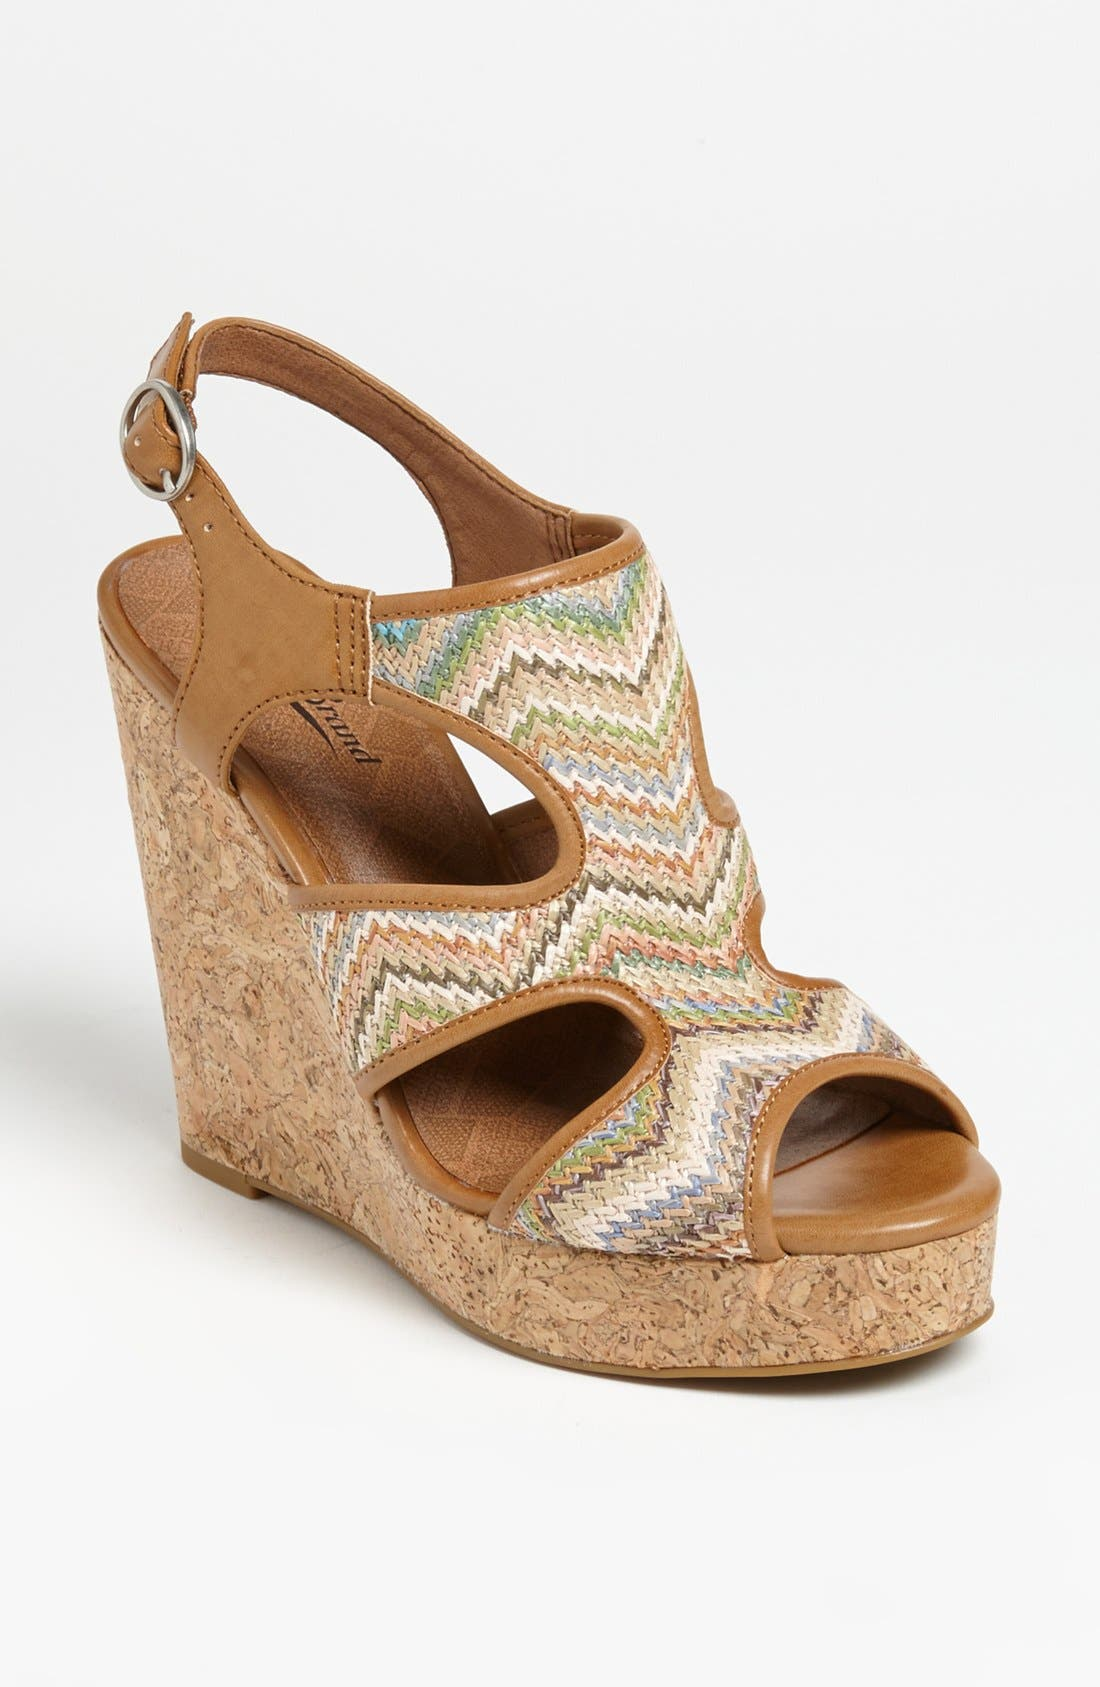 Alternate Image 1 Selected - Lucky Brand 'Riedel' Wedge Sandal